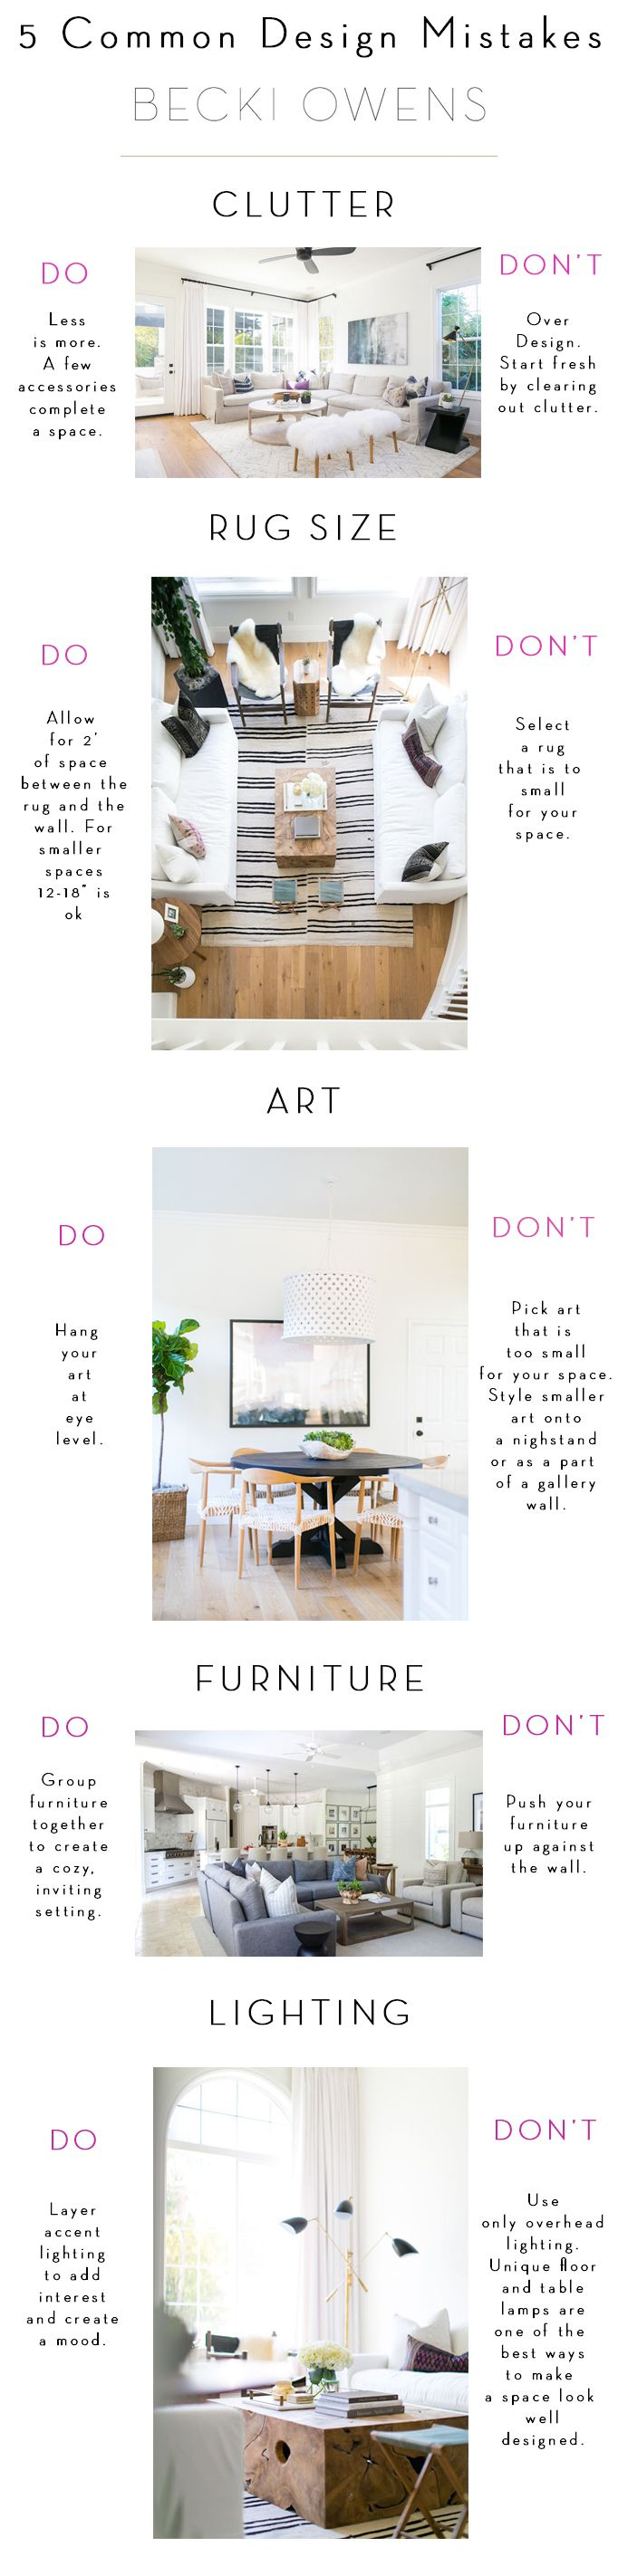 Arm yourself with this list of common design mistakes + easy fixes and then edit your own space to get a polished designer look.